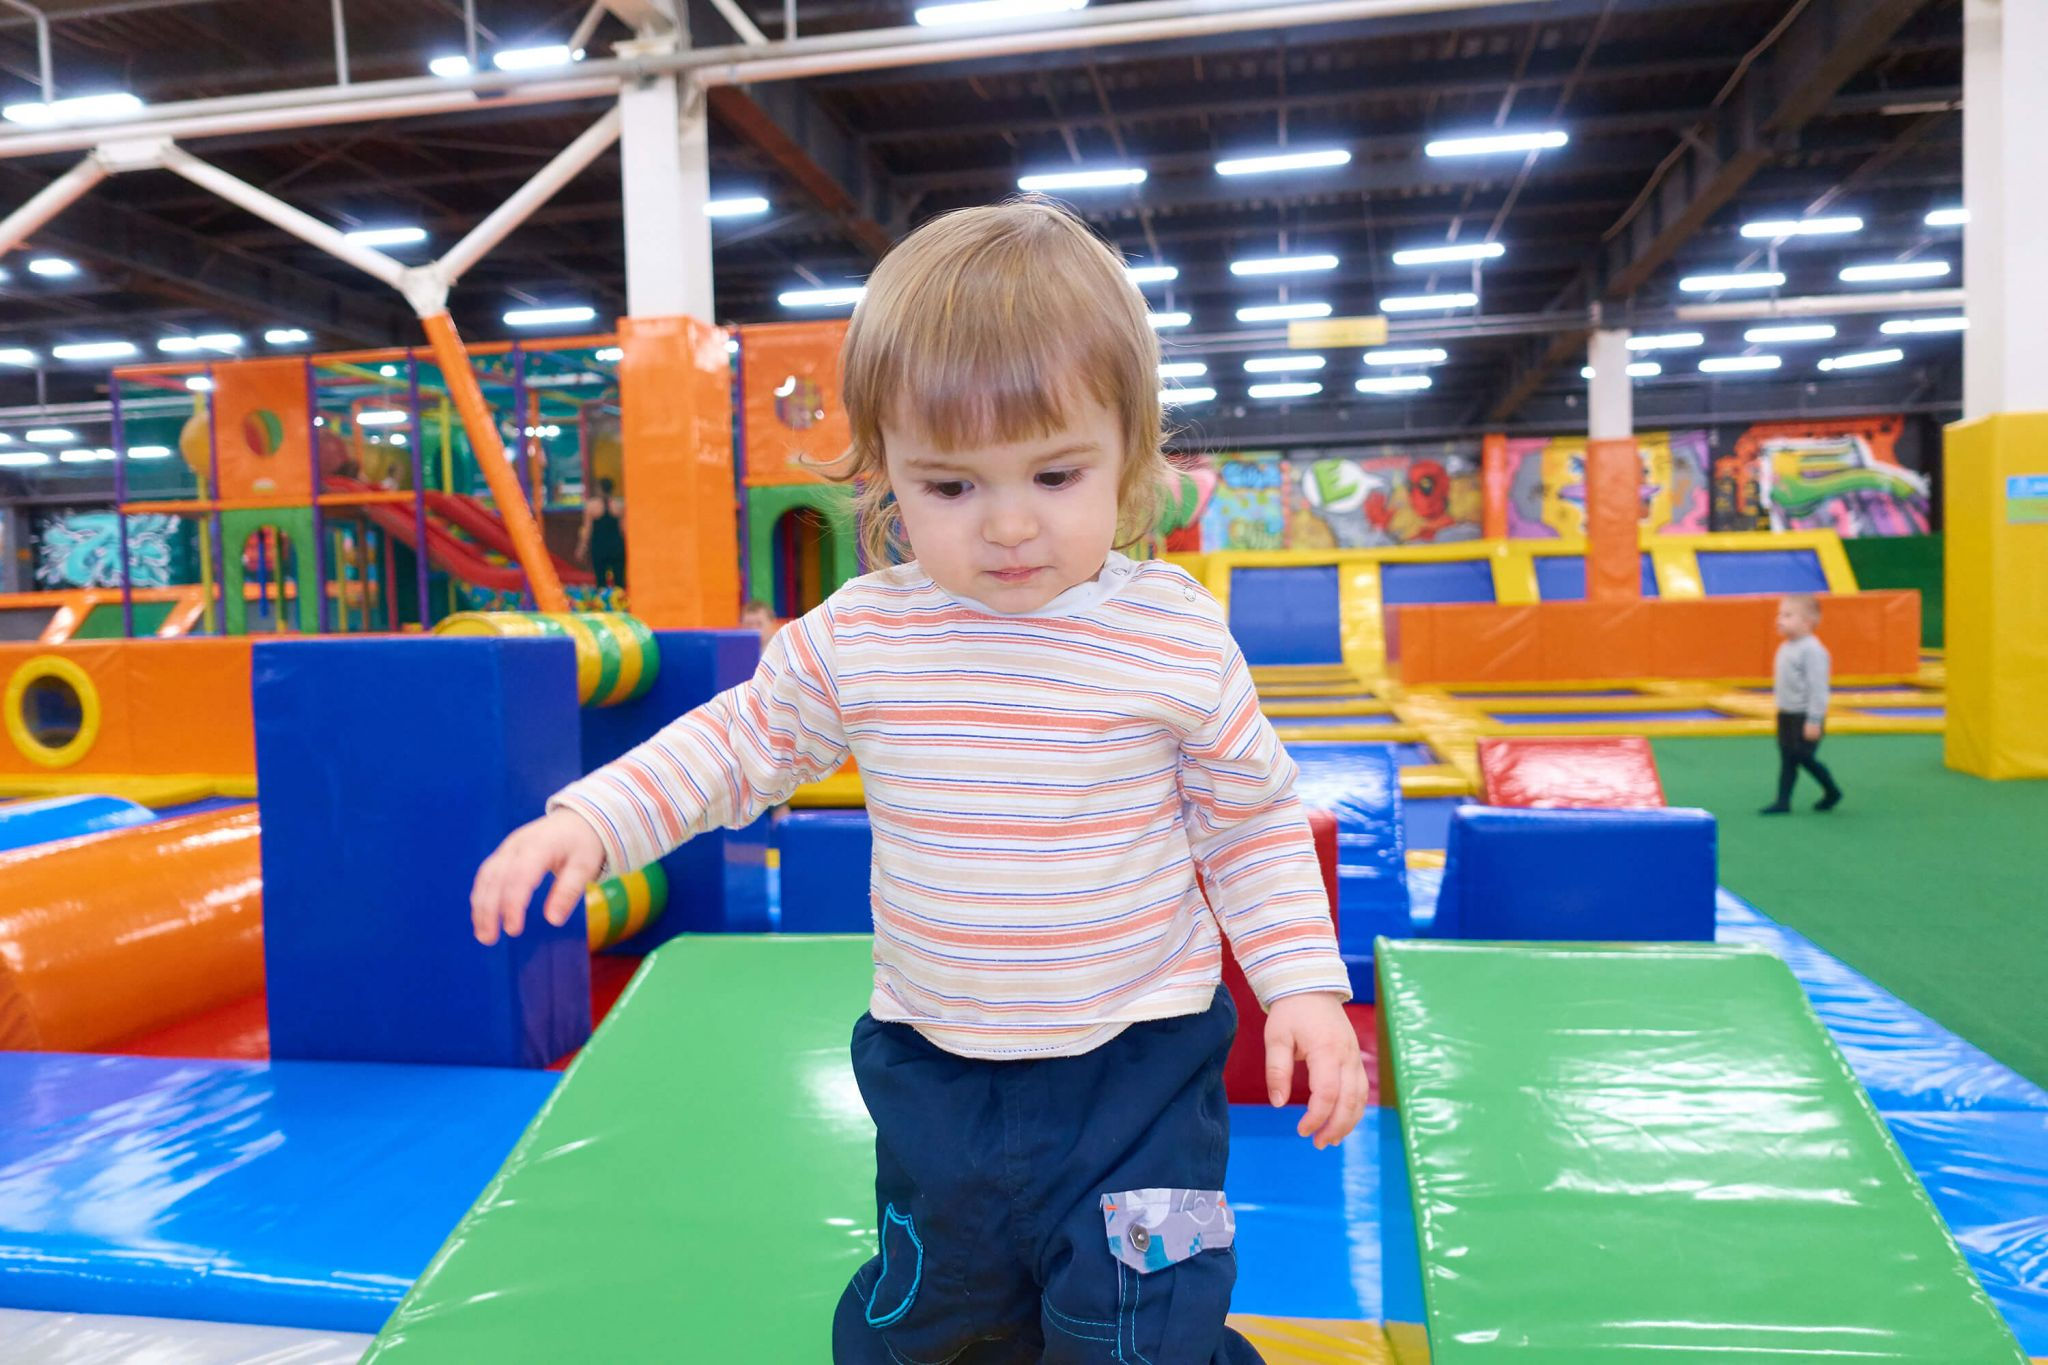 One year old child playing in a soft play centre